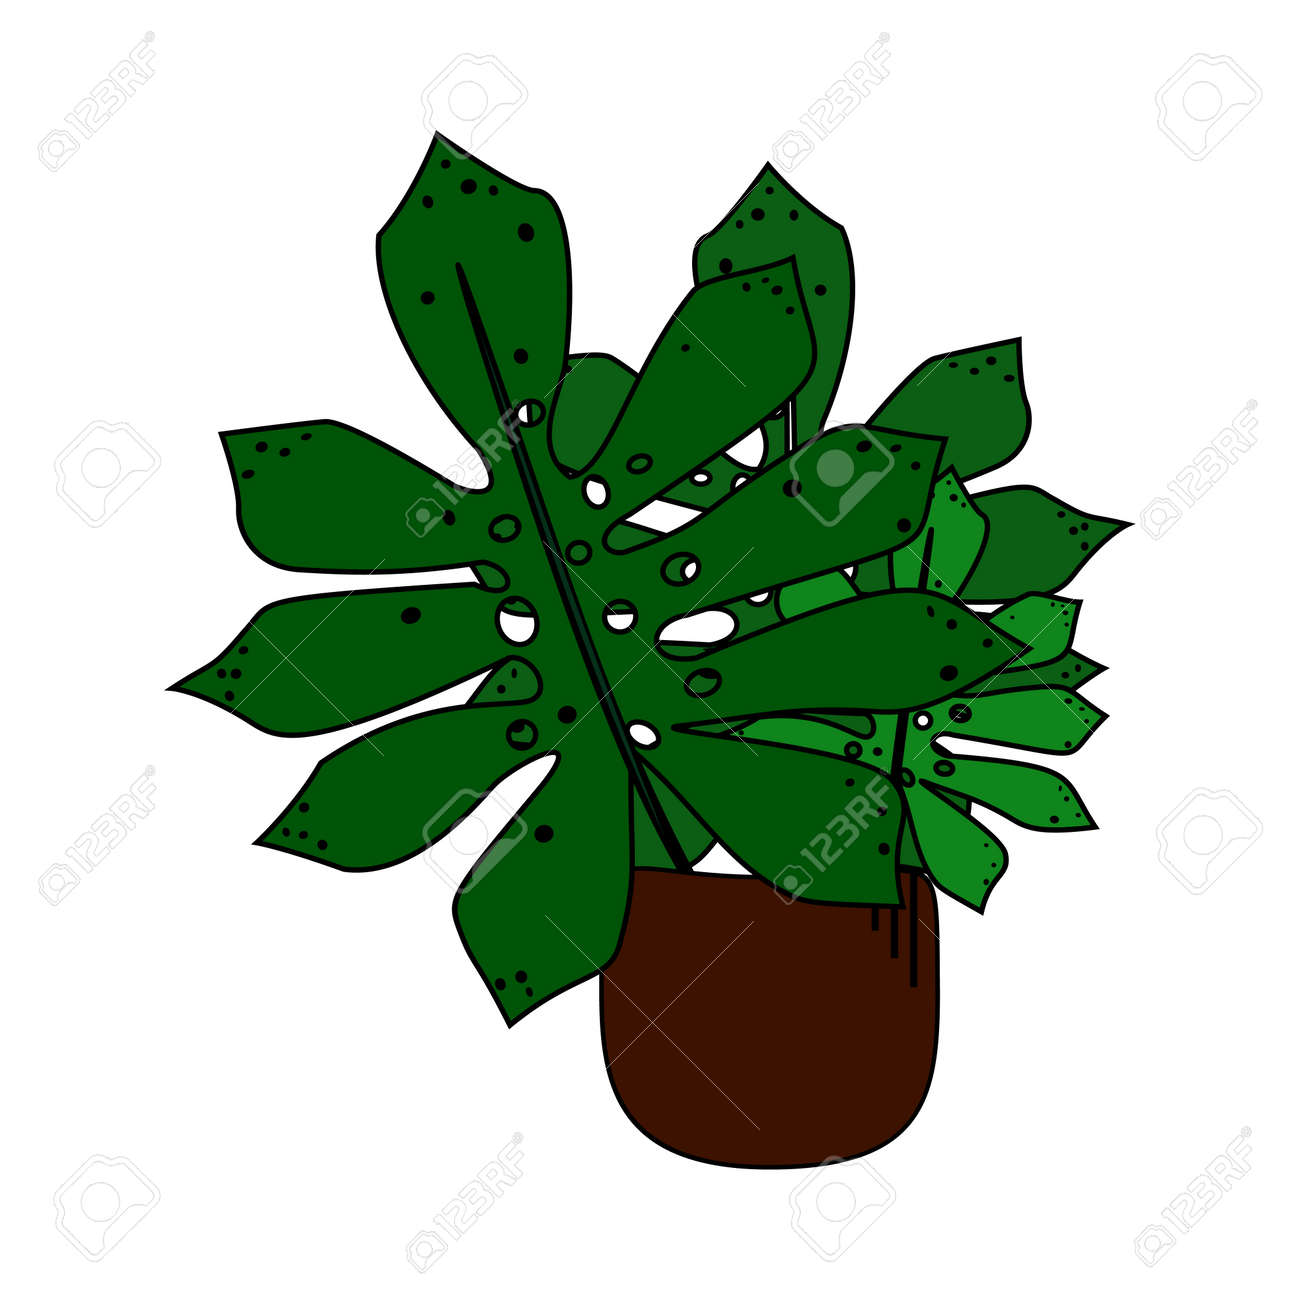 Cute Exotic Dark Green Plant With Big Leaves In Pot Cartoon Style Royalty Free Cliparts Vectors And Stock Illustration Image 93941323